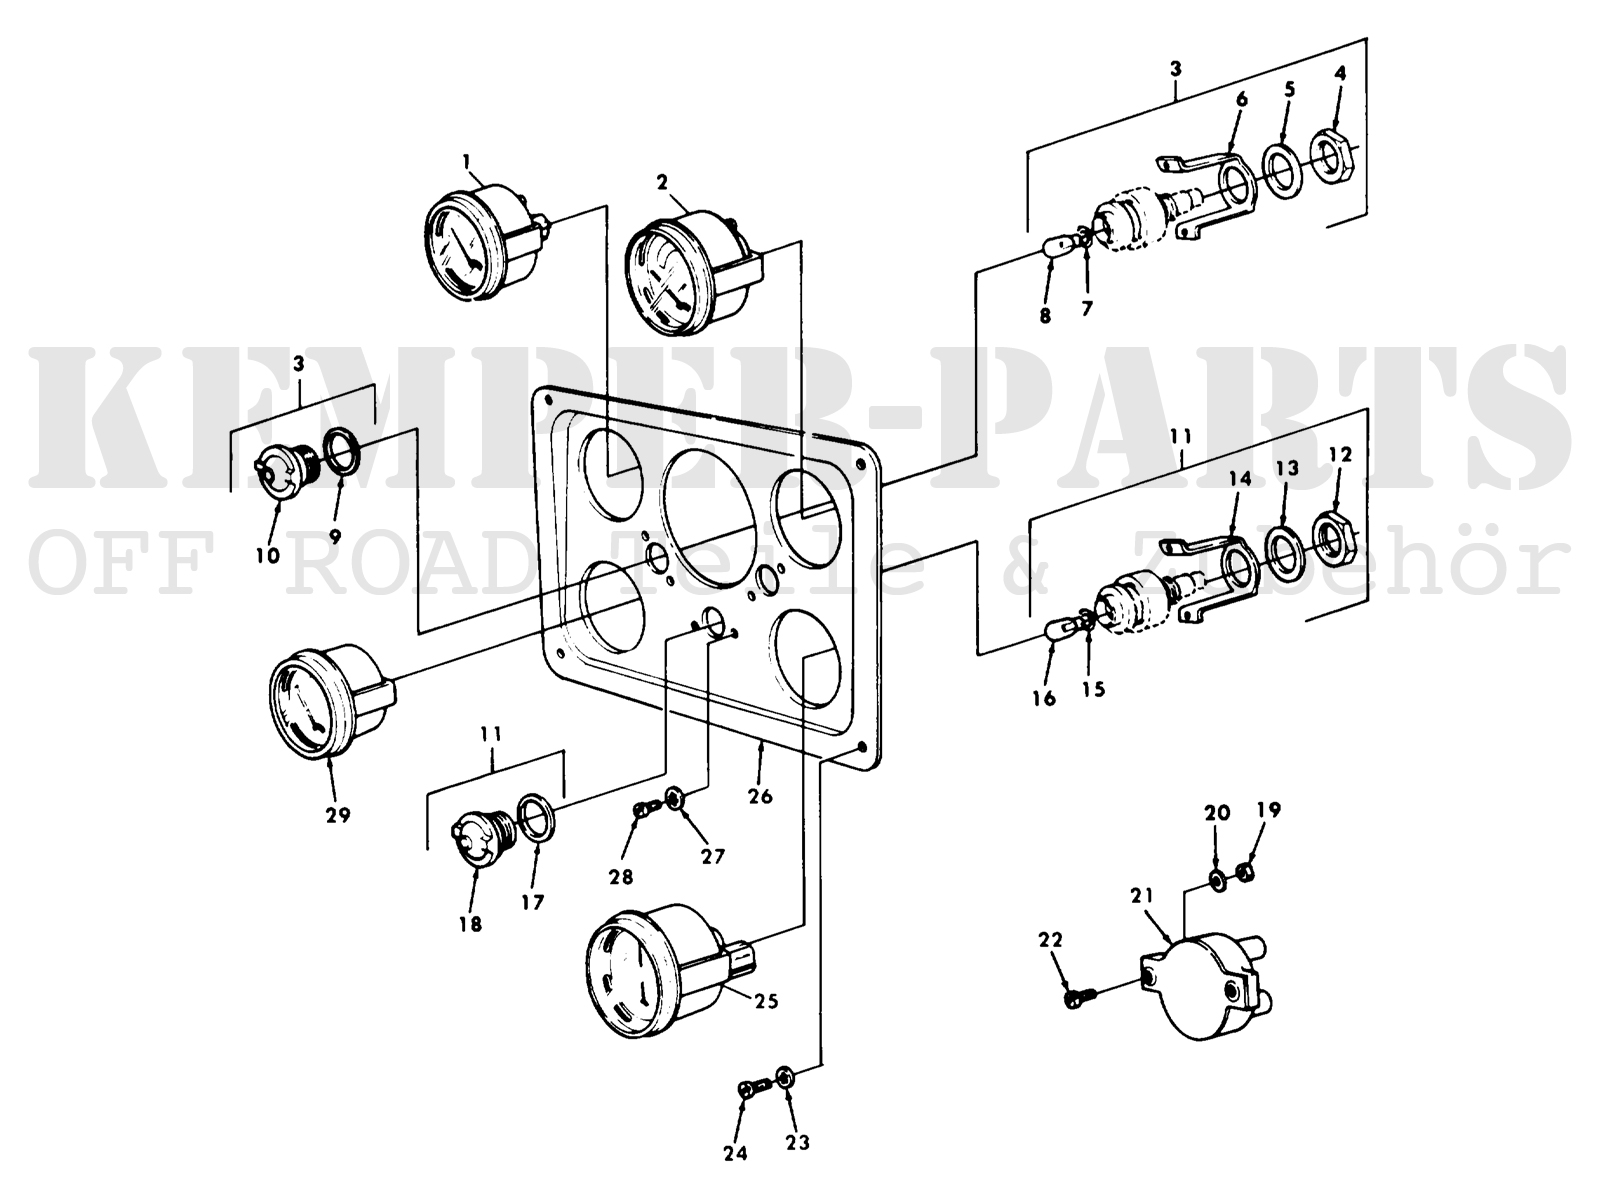 M151 Jeep Parts | Wiring Diagram Database M Wiring Diagram on